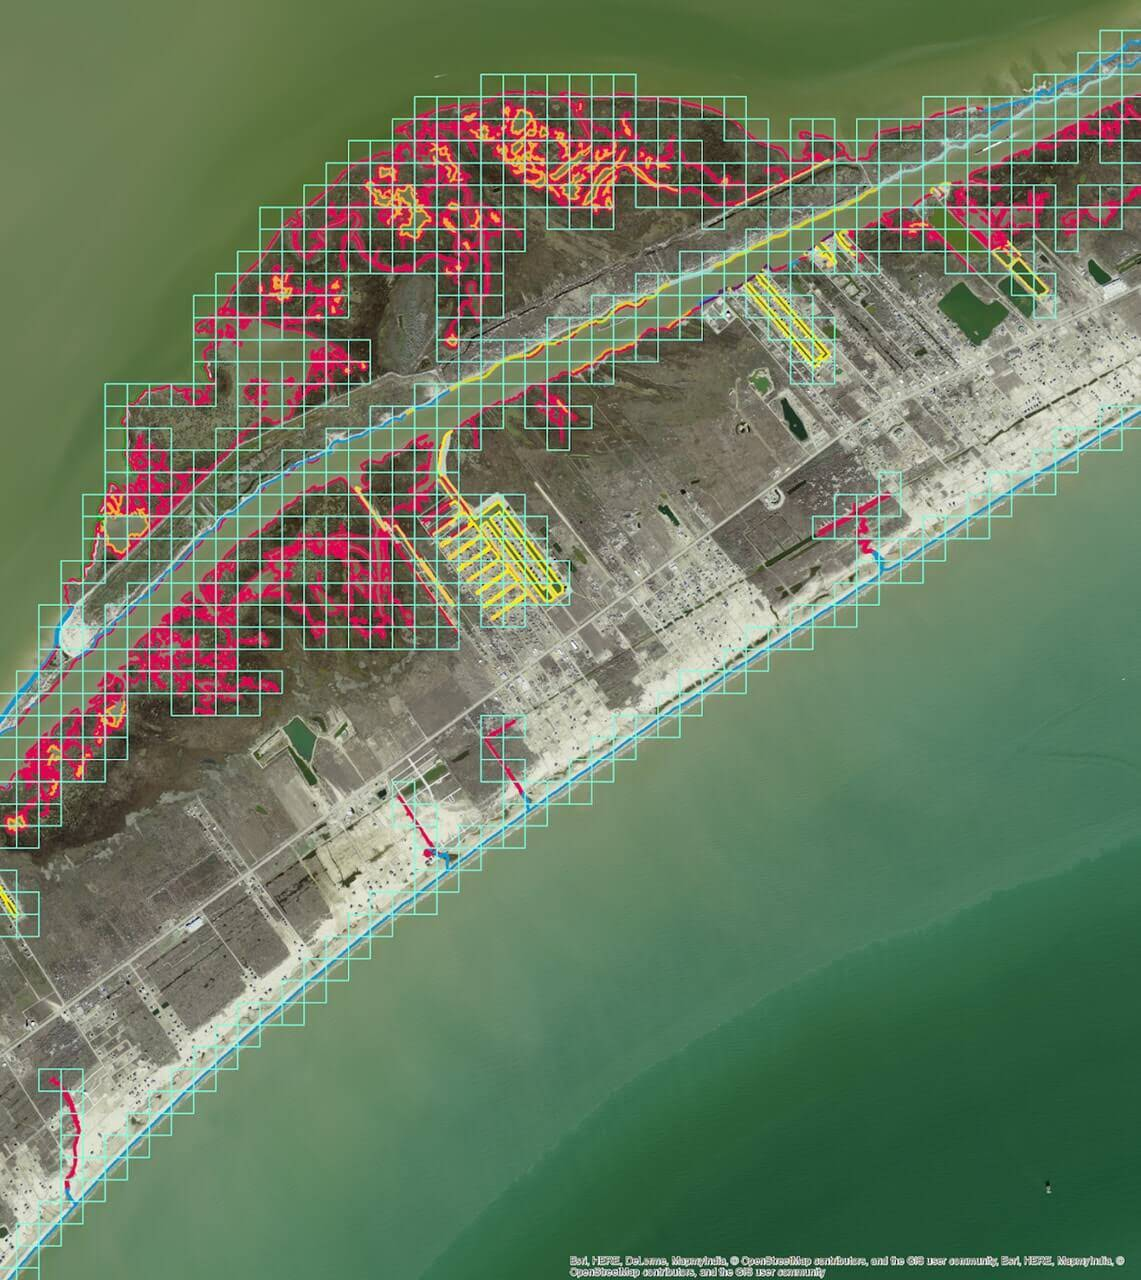 Rectified imagery overlaid with ESI shorelines and grid used to extract both imagery and shorelines.